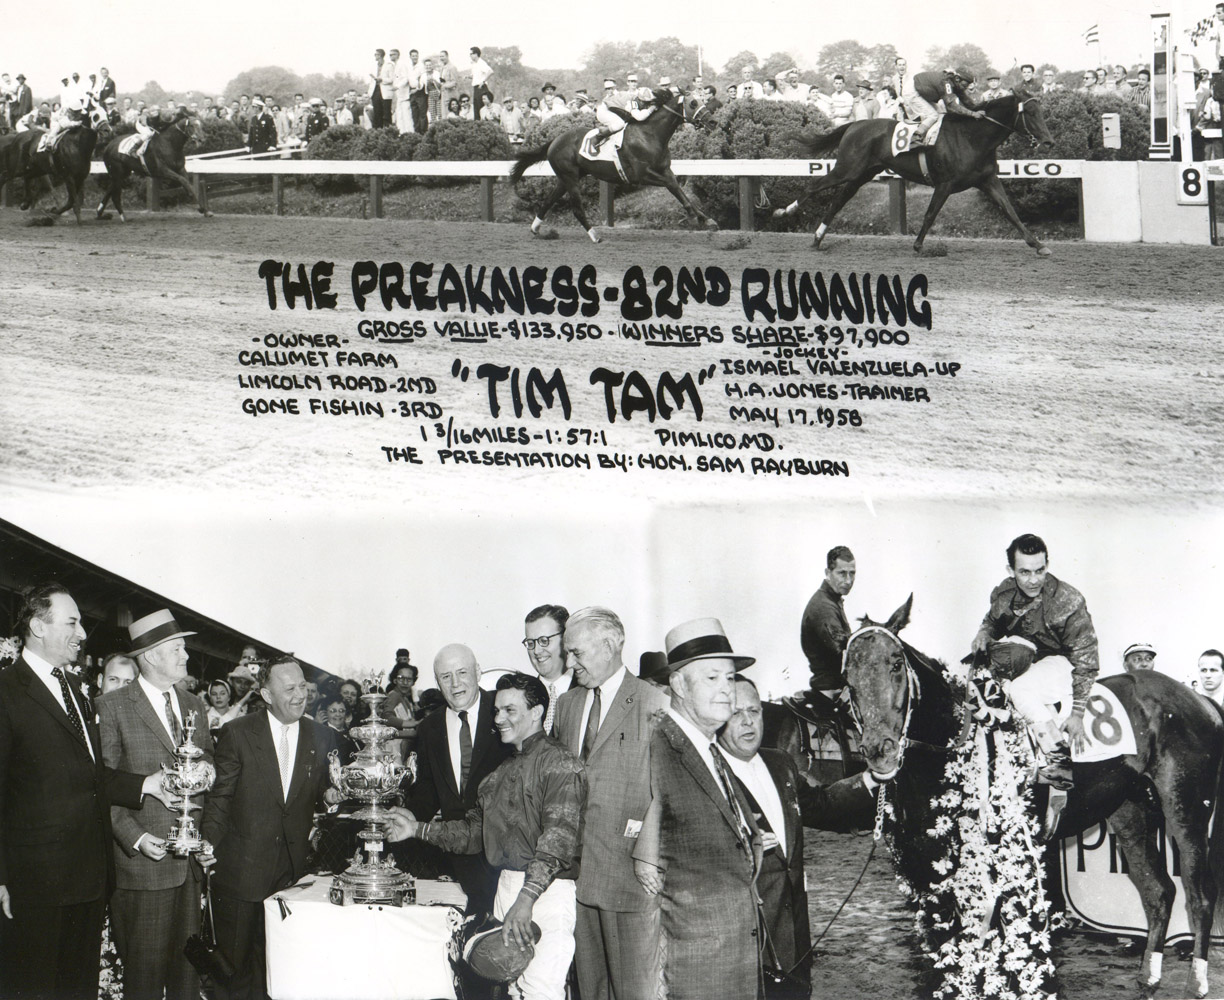 Win composite photograph for the 1958 Preakness, won by Tim Tam with Ismael Valenzuela up (Pimlico Photo/Museum Collection)